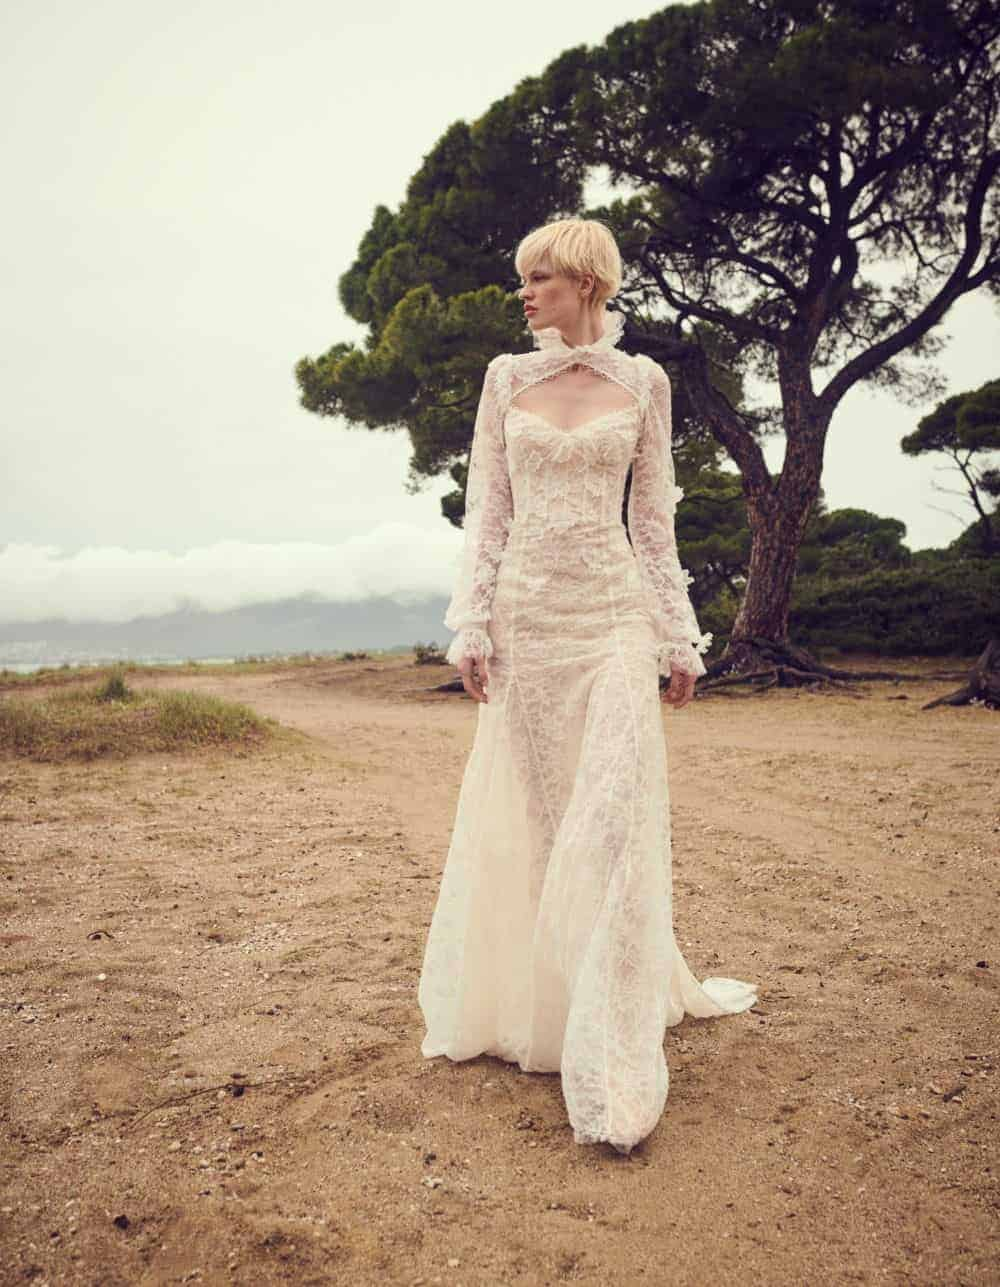 wedding dress with lace and collar by Costarellos